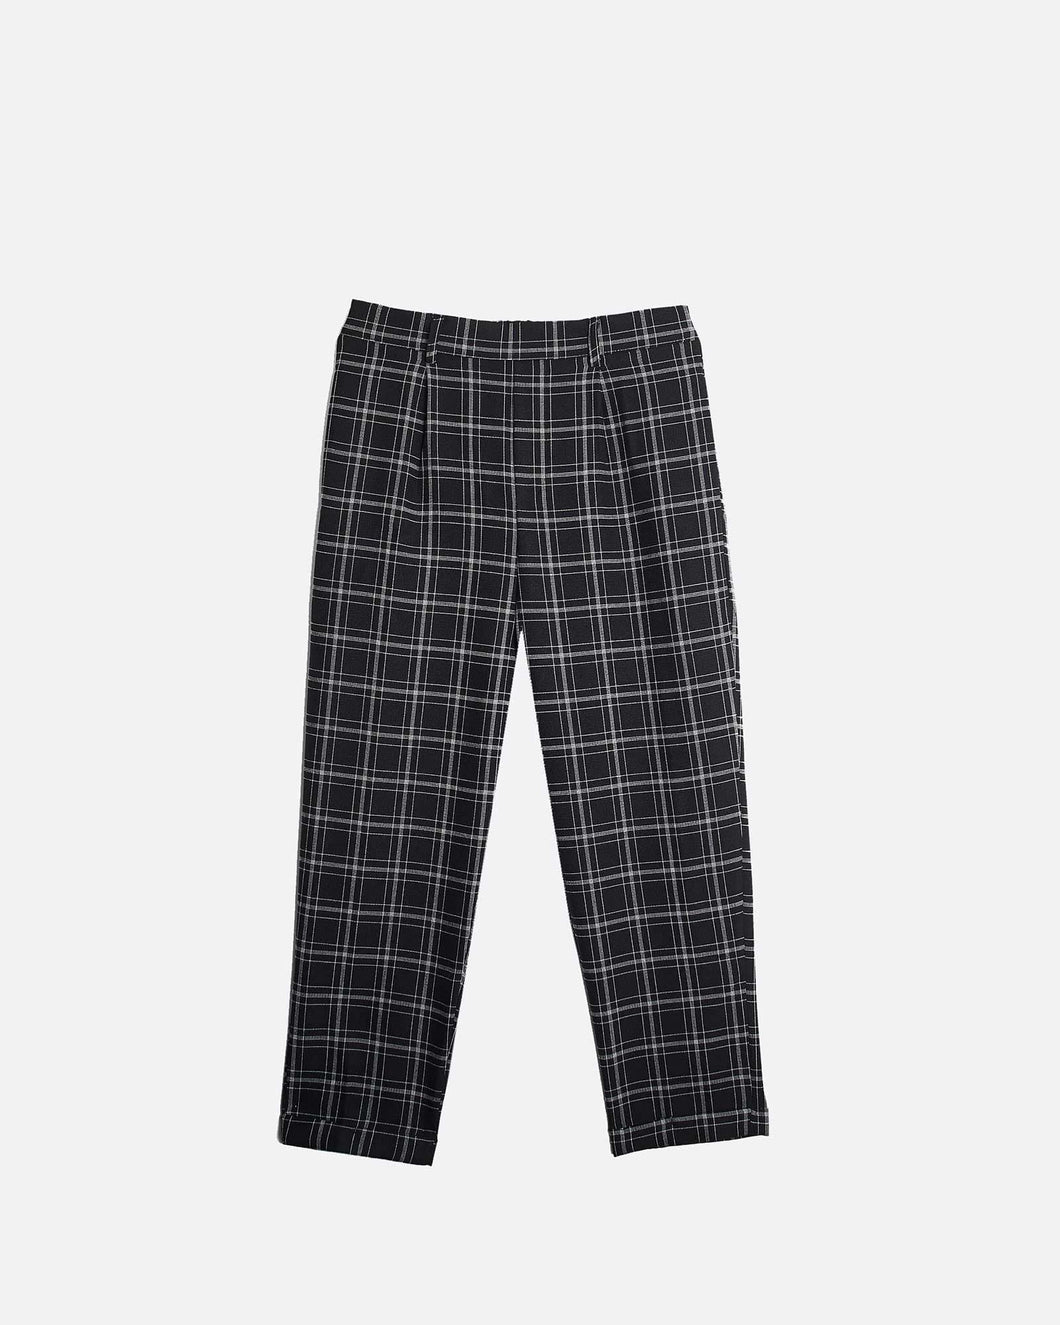 RELAX CHECK TROUSERS